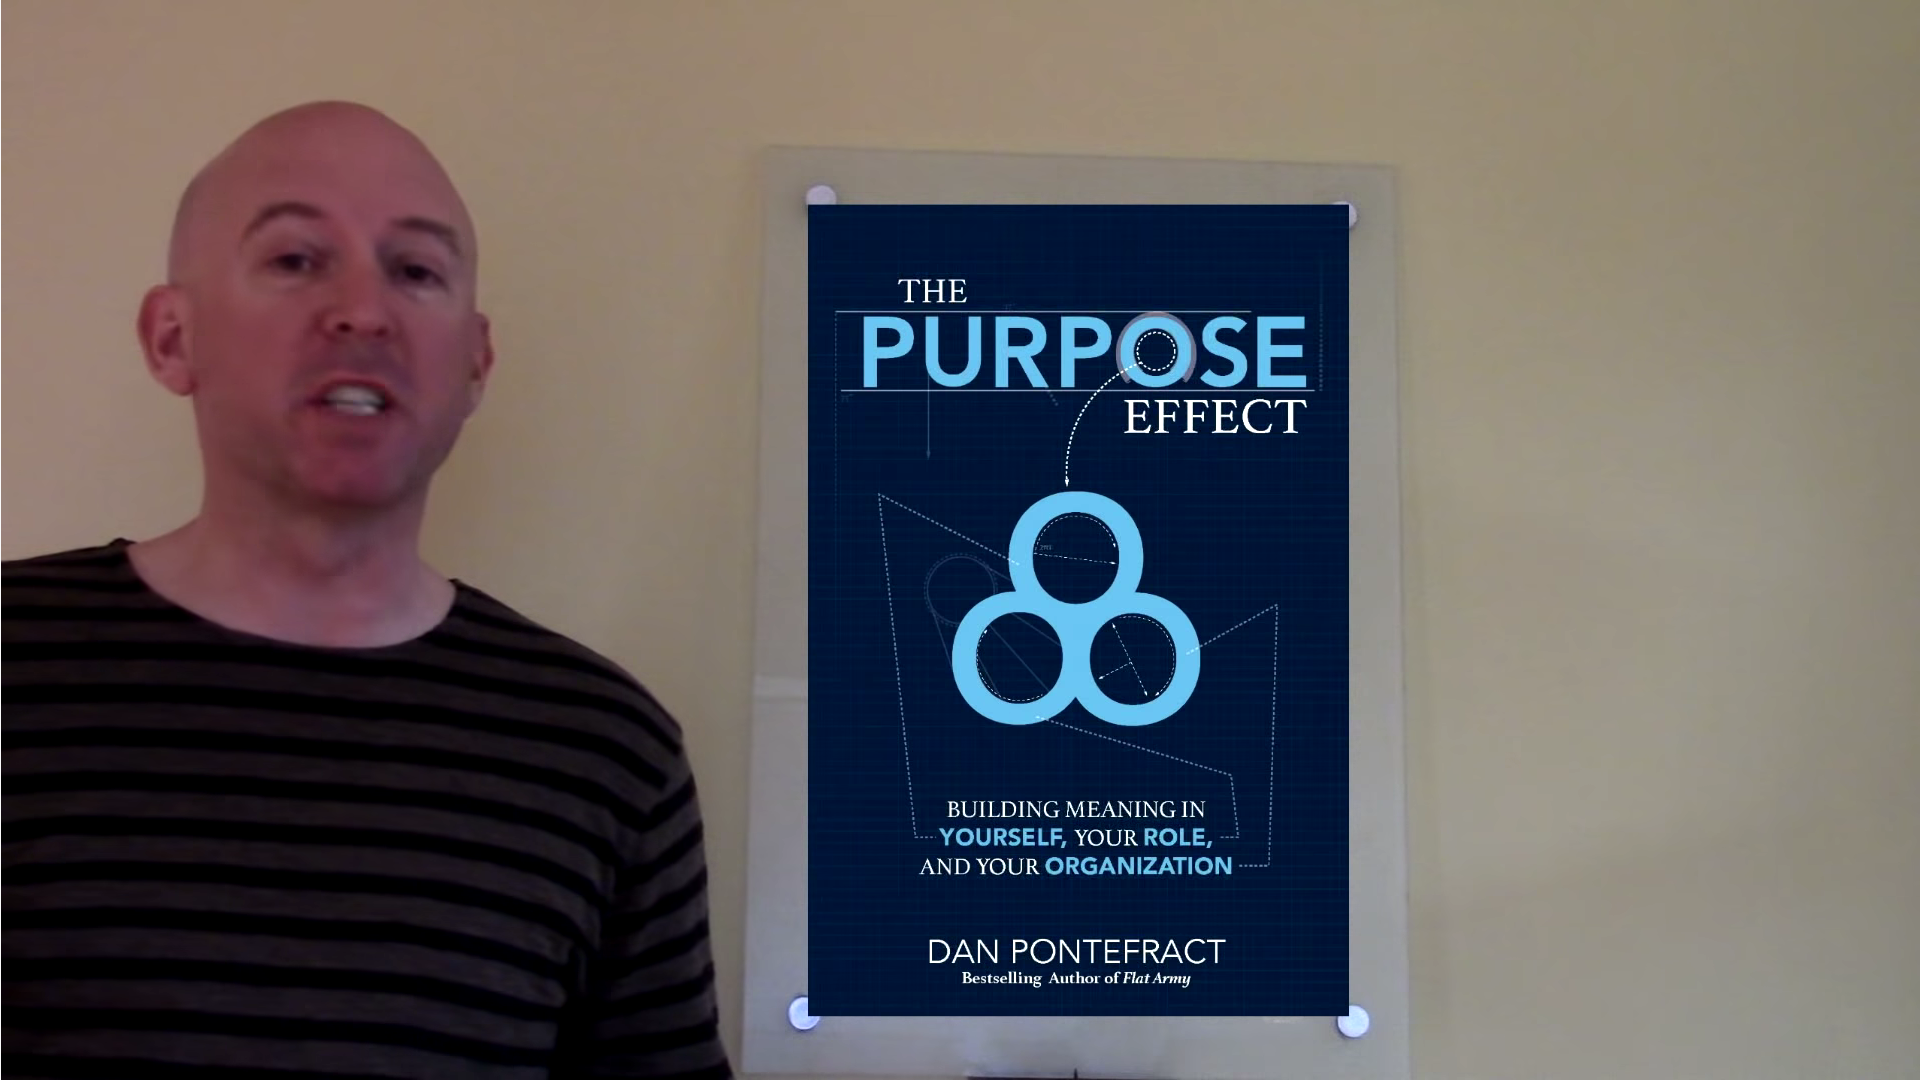 Introduction to Personal Purpose